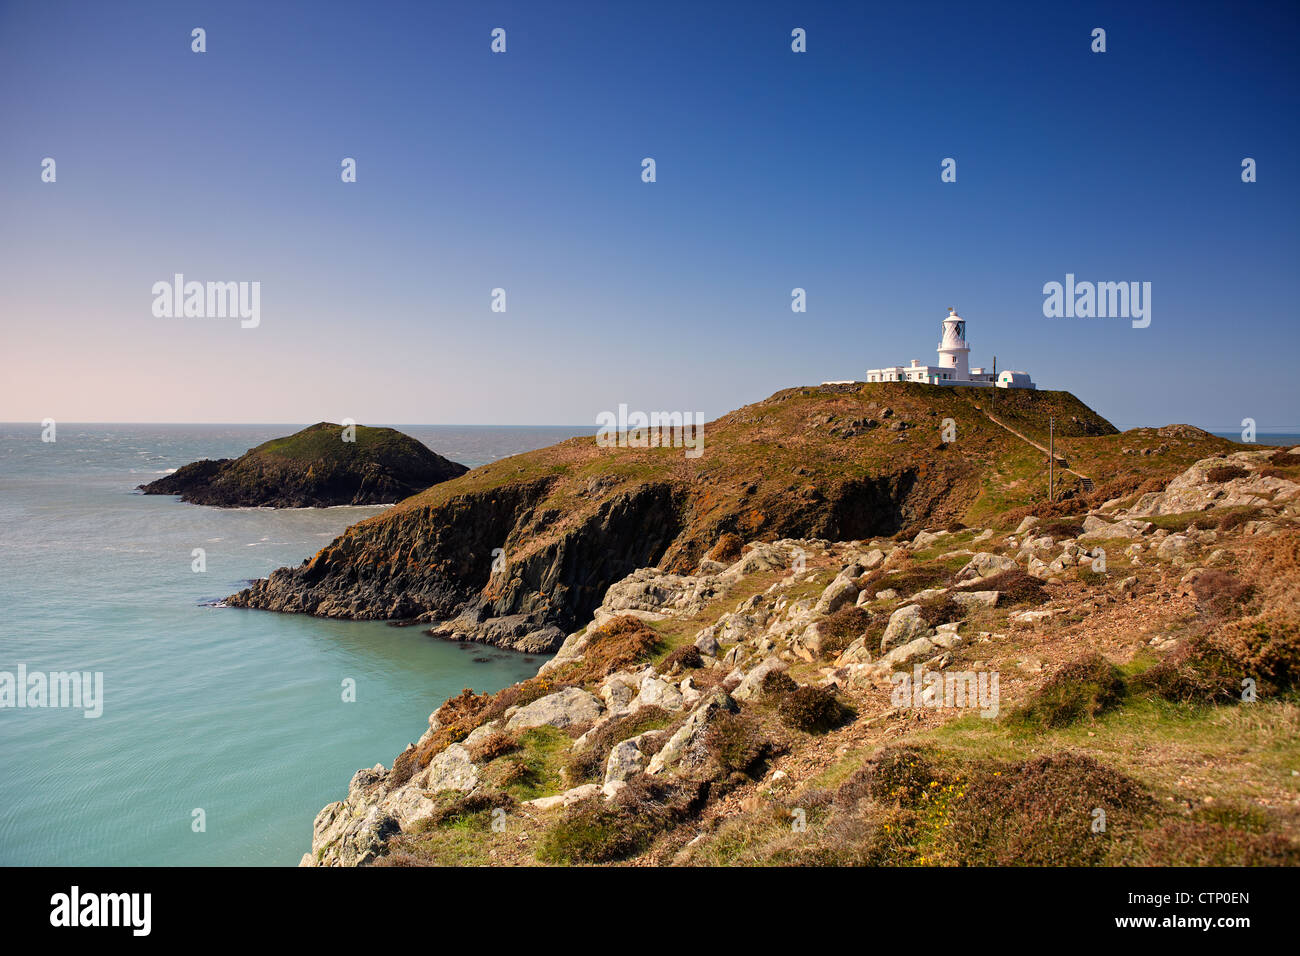 Strumble Head Lighthouse, near Fishguard, West Wales, UK - Stock Image